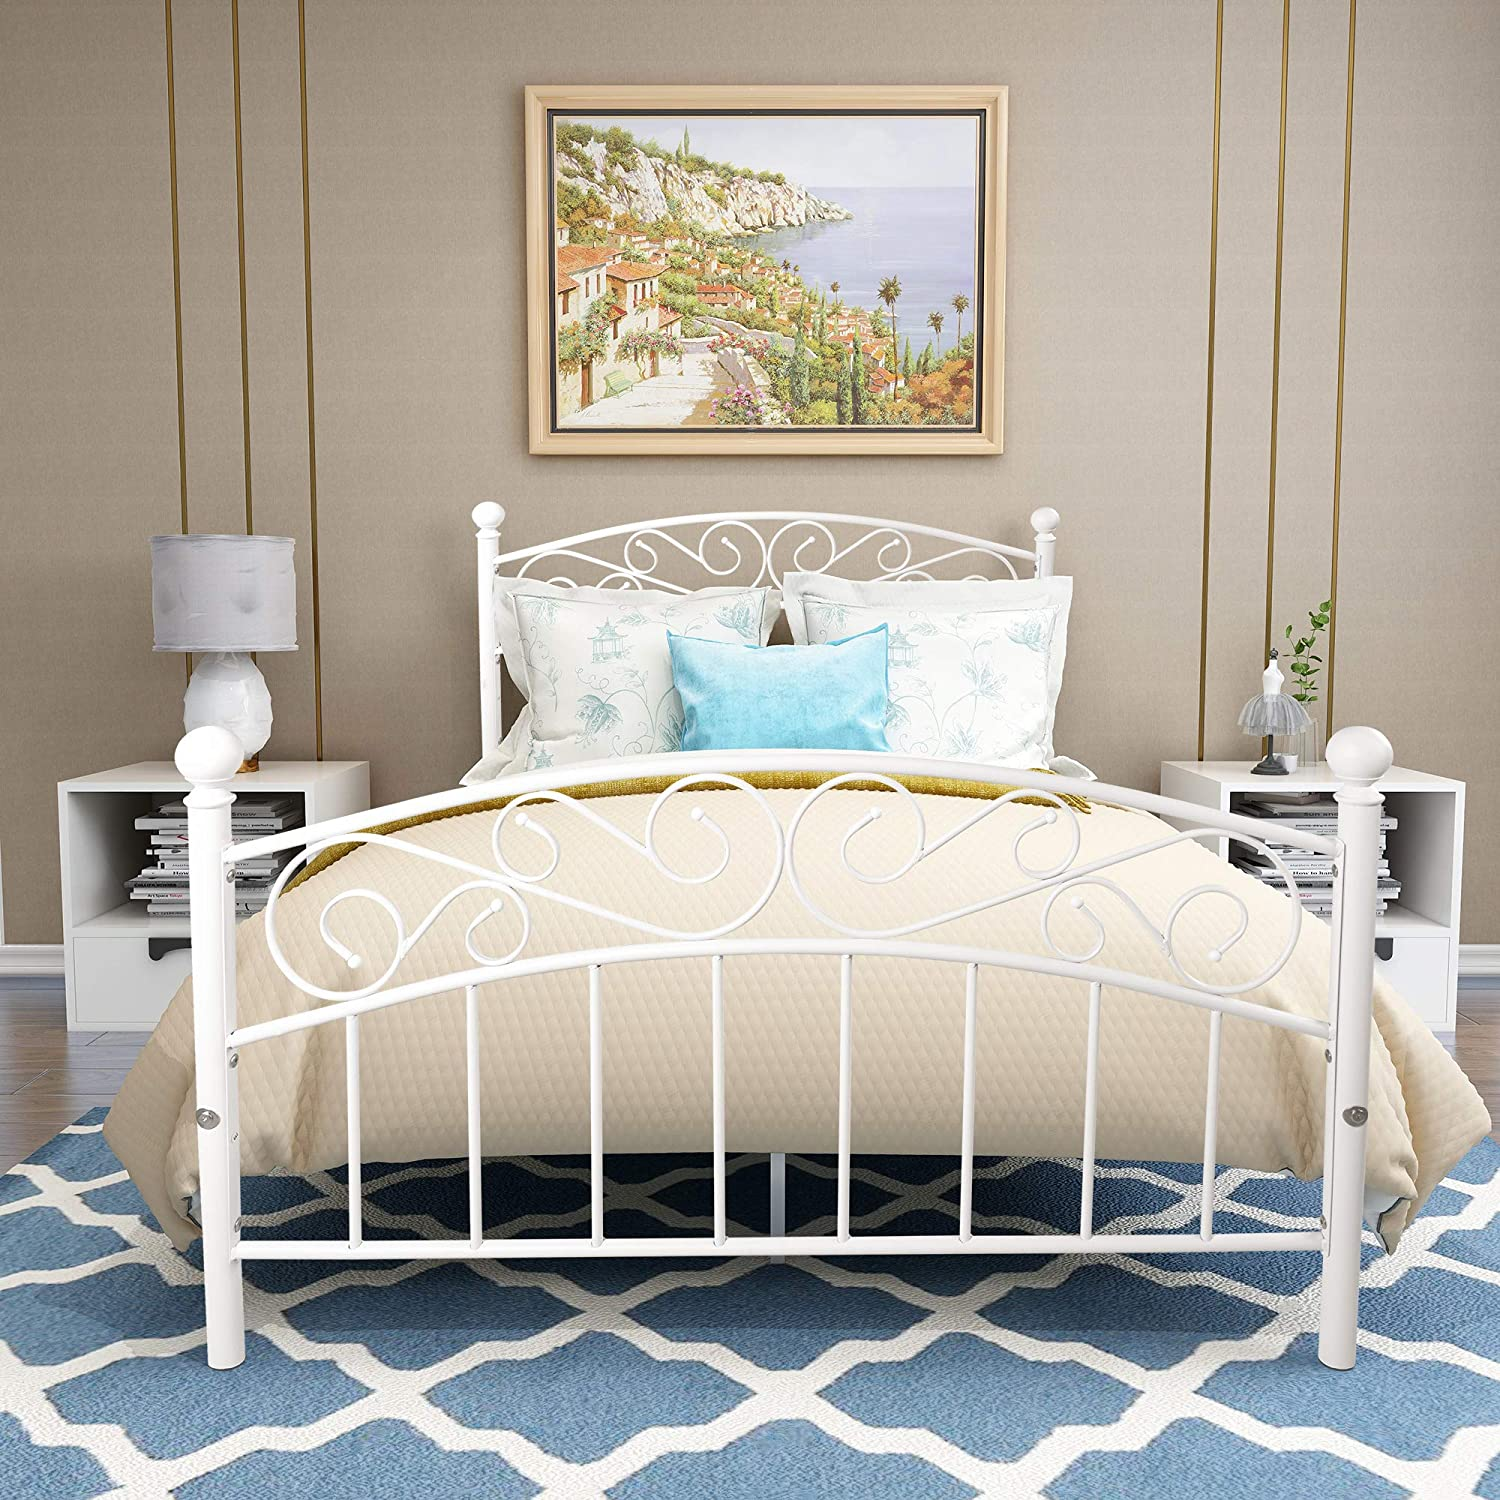 Elegant Home Products Bed Frame Platform Bed Heavy Duty With Headboard And Footboard Mattress Foundation Bedroom Furniture No Box Spring White Sand Line Full Amazon In Home Kitchen